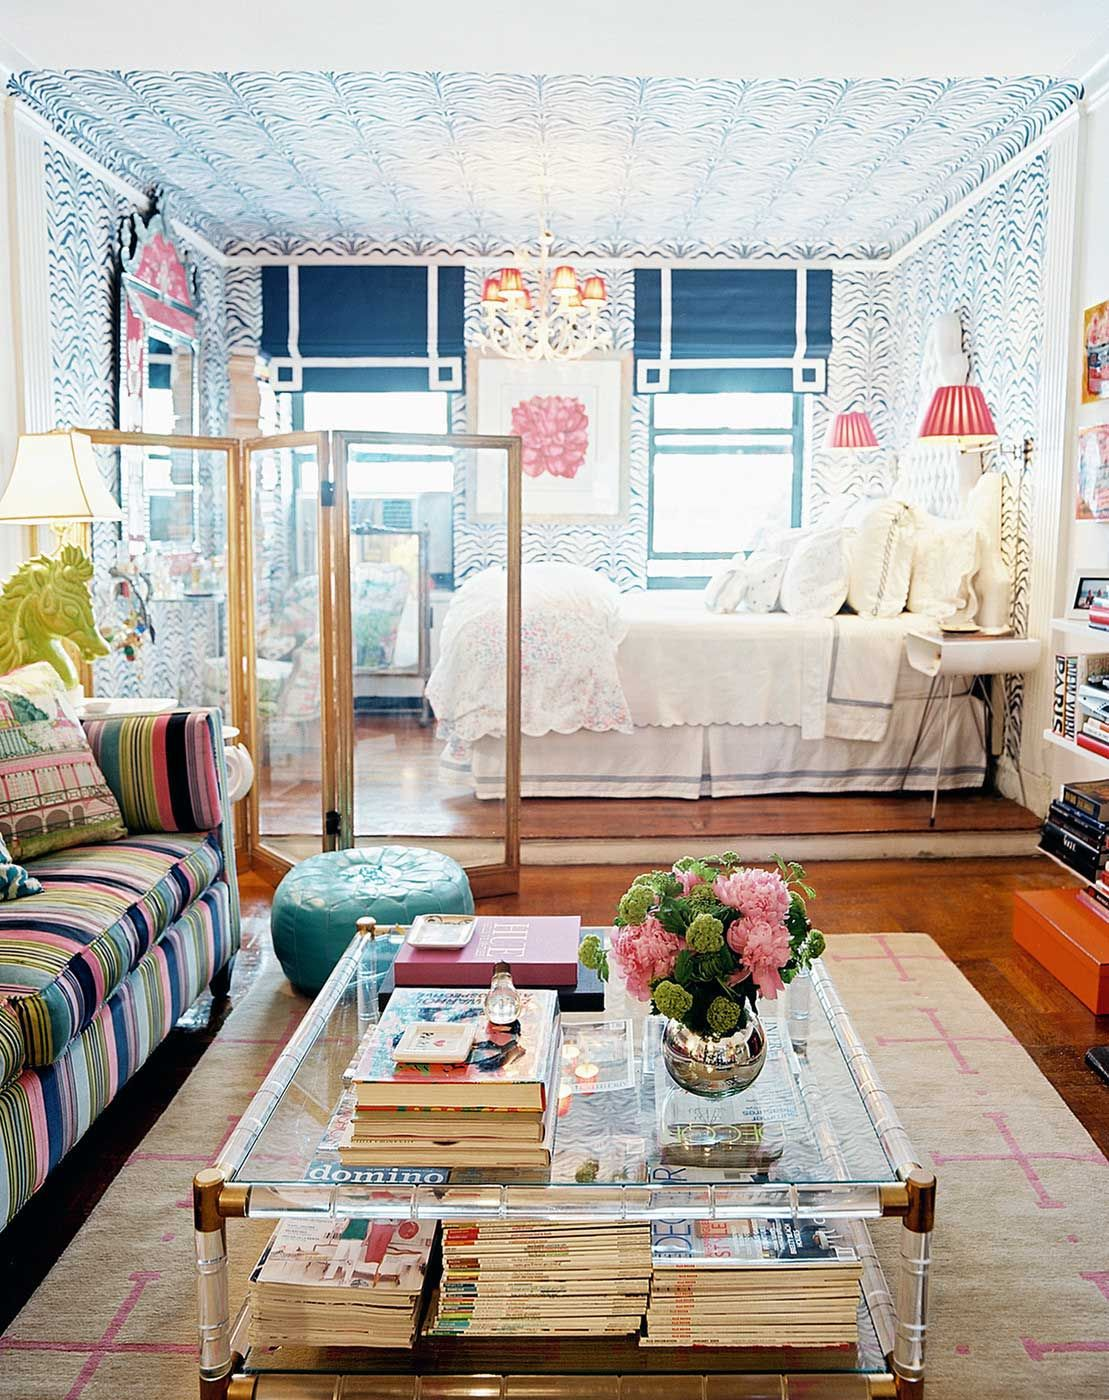 30 Small Spaces Girly Apartment Bedroom Ideas Small Room Design